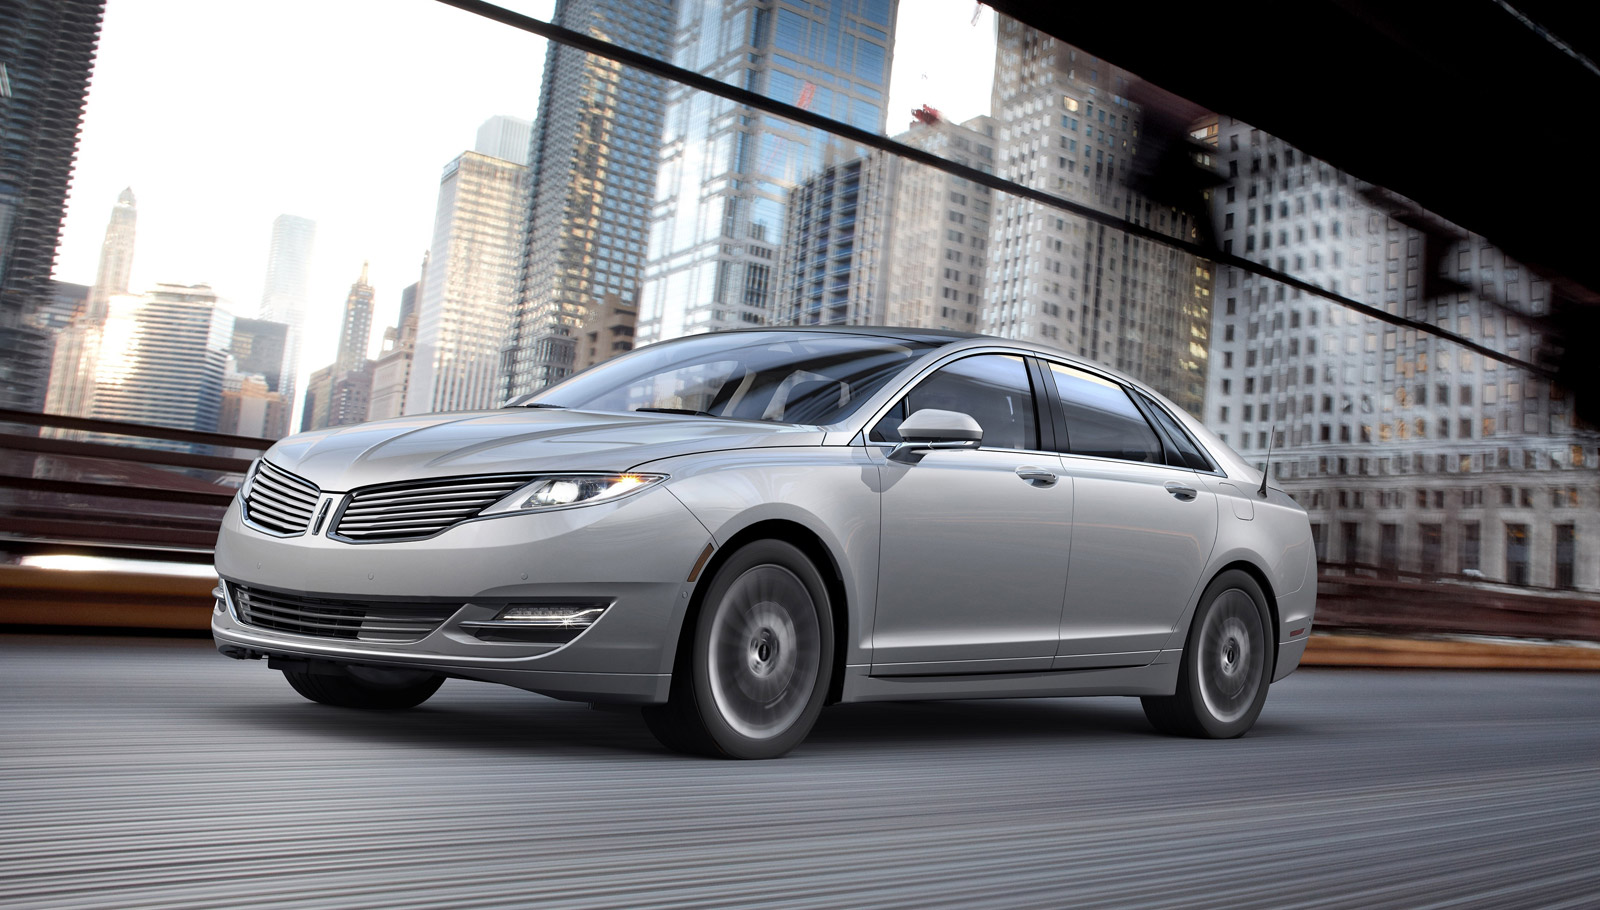 Volvo Kansas City >> 2013 Lincoln MKZ Review, Ratings, Specs, Prices, and Photos - The Car Connection